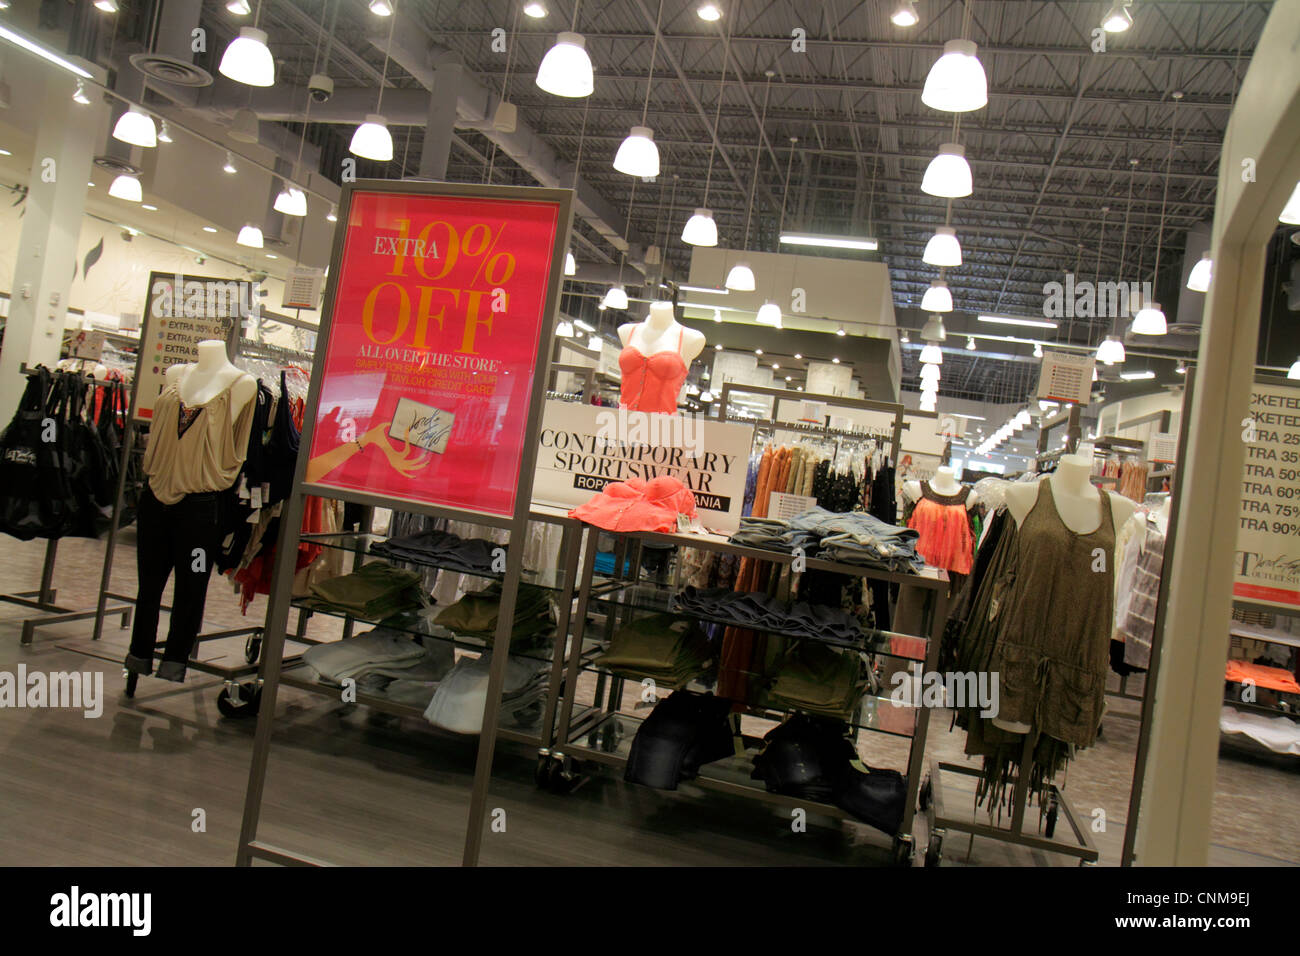 Miami Florida Sweetwater Dolphin Mall shopping Lord   and Taylor Outlet  Store clothing women s retail display c95525653a99d